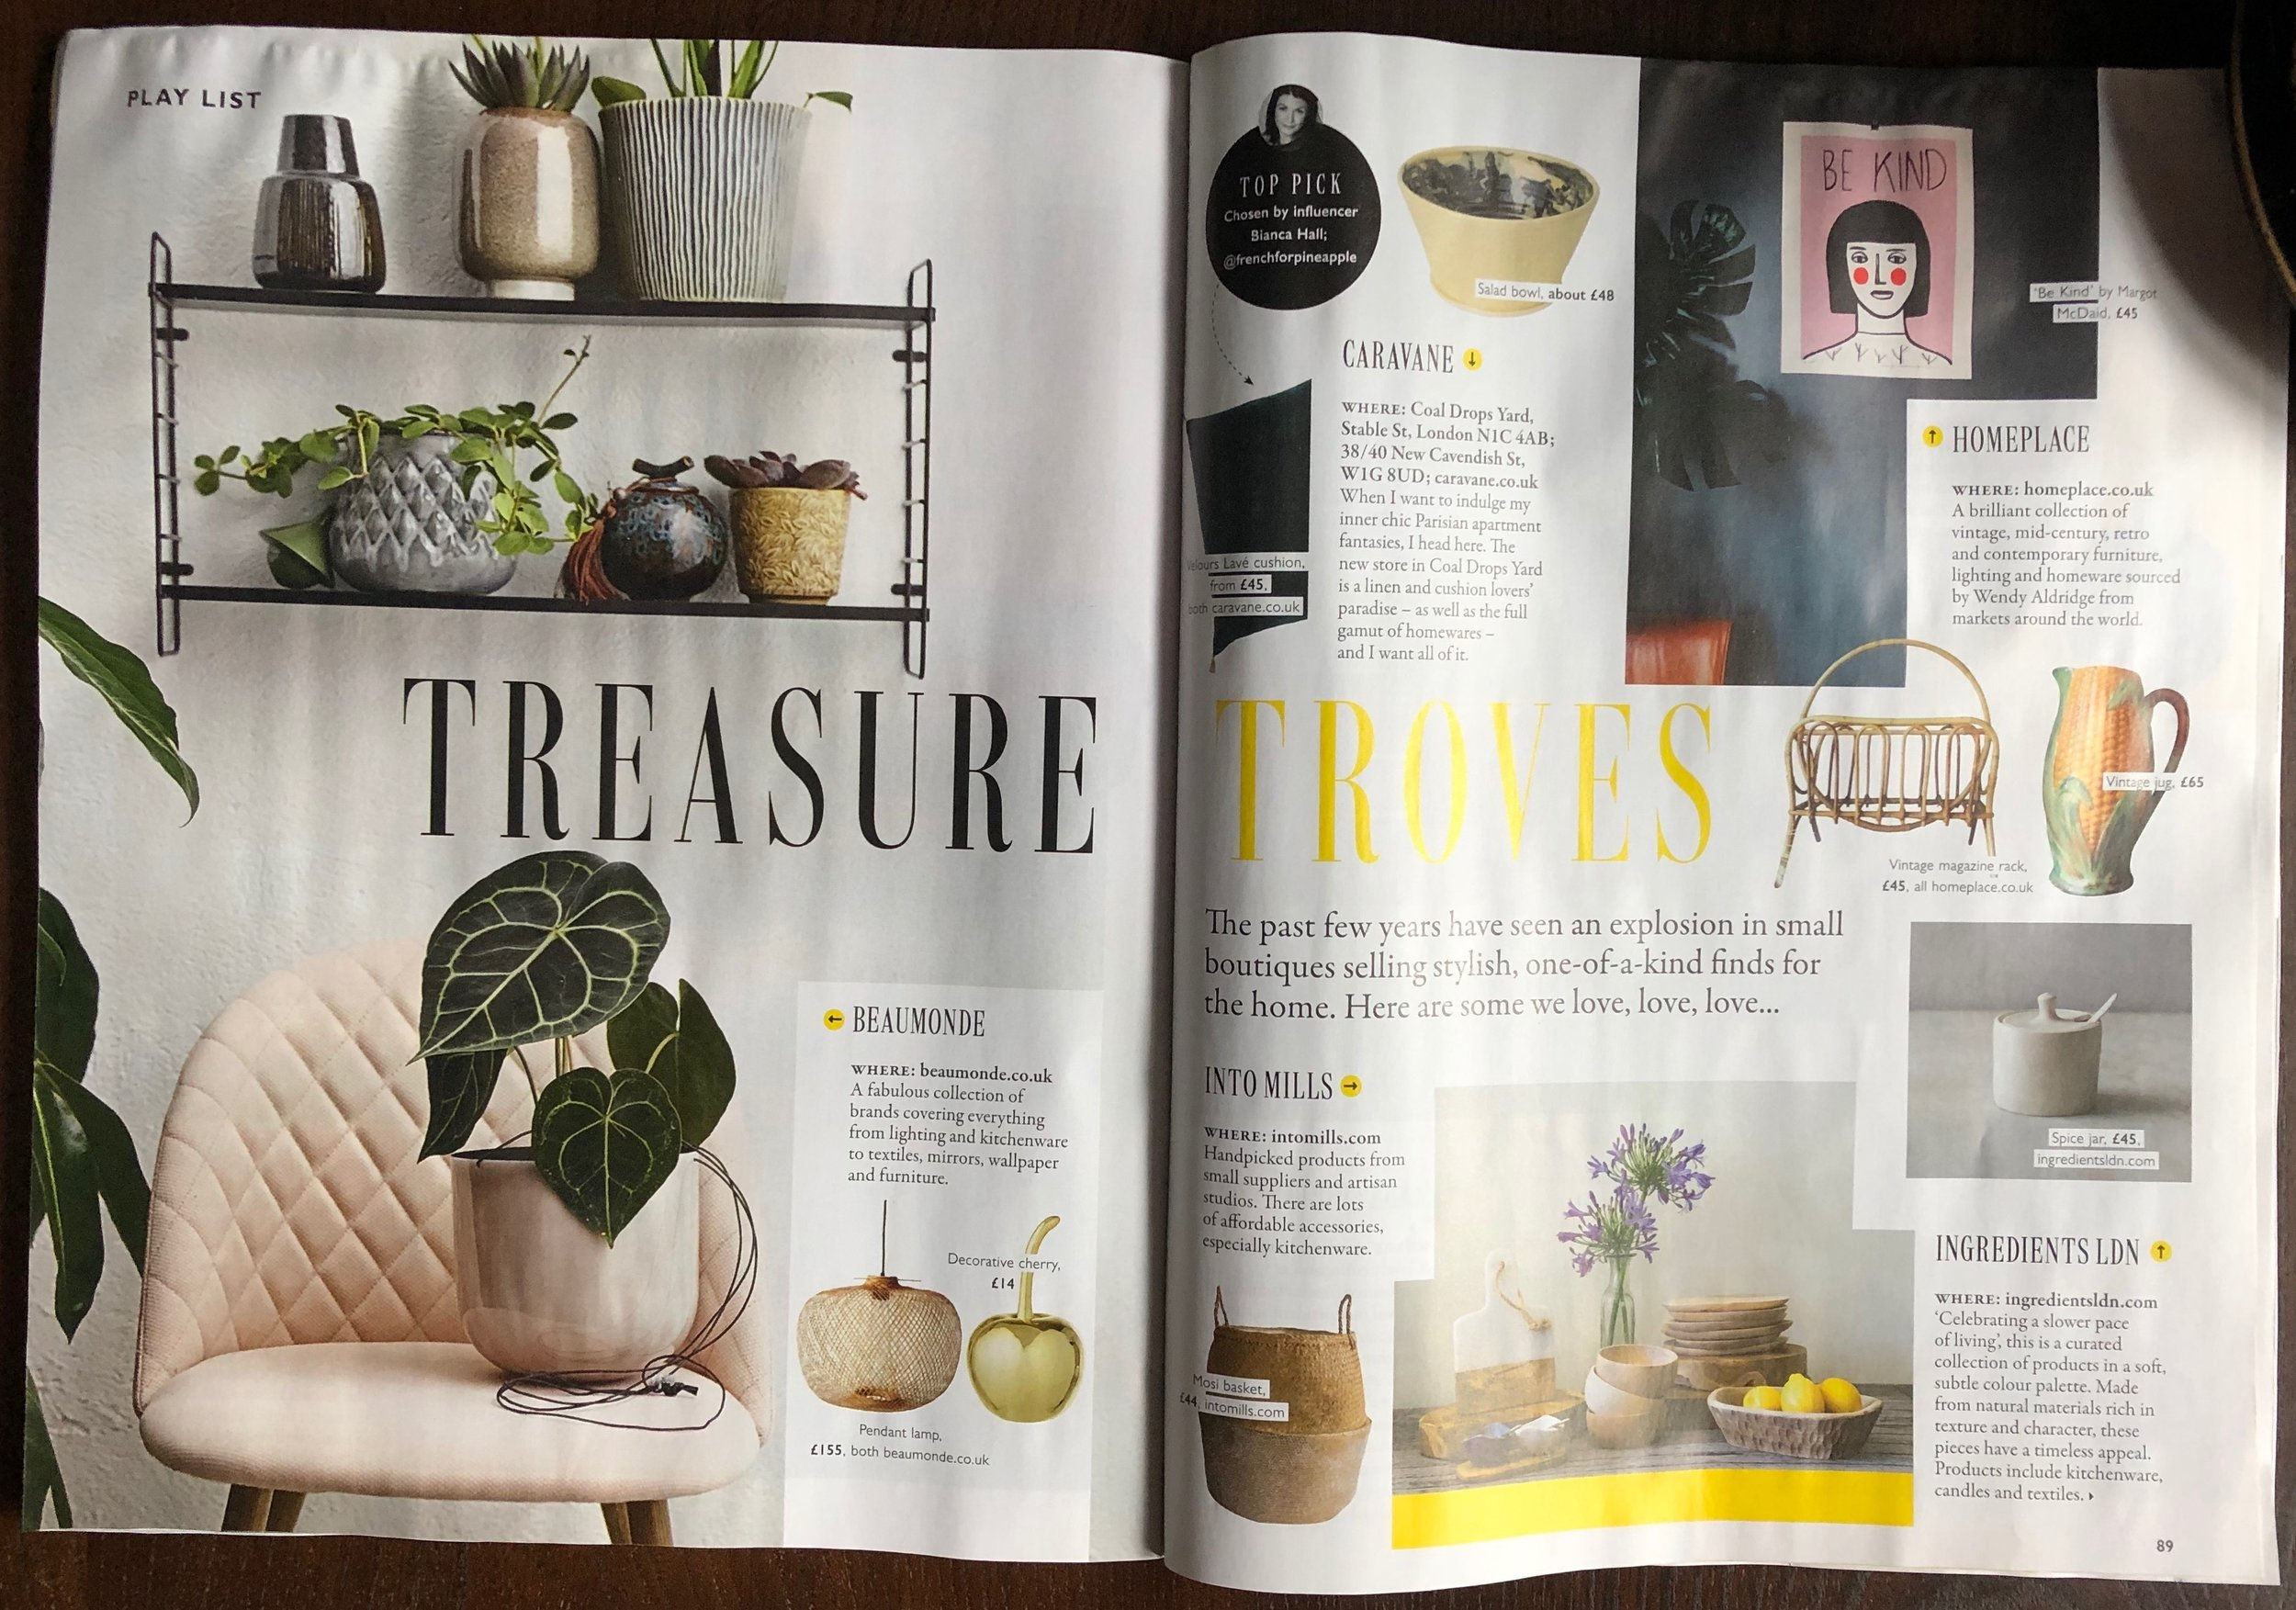 Grazia Treasure Troves feature 11th Feb19. P1-2.jpeg